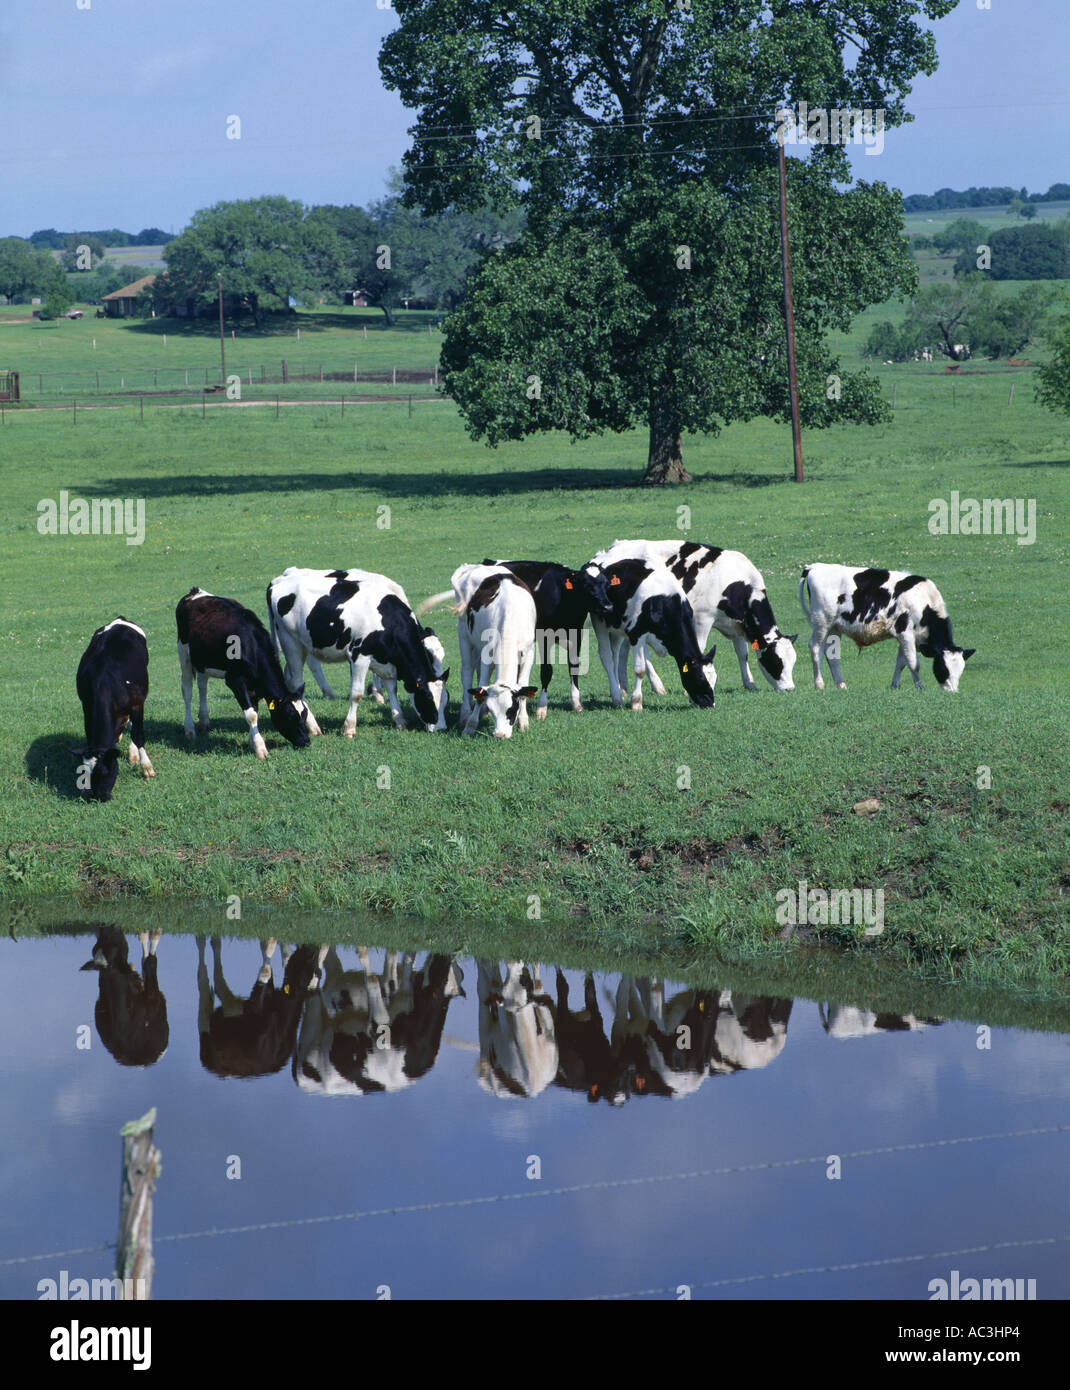 EXCELLENT HOLSTEIN HEIFERS AND BULLS 9 MONTHS OLD ON PASTURE TEXAS - Stock Image